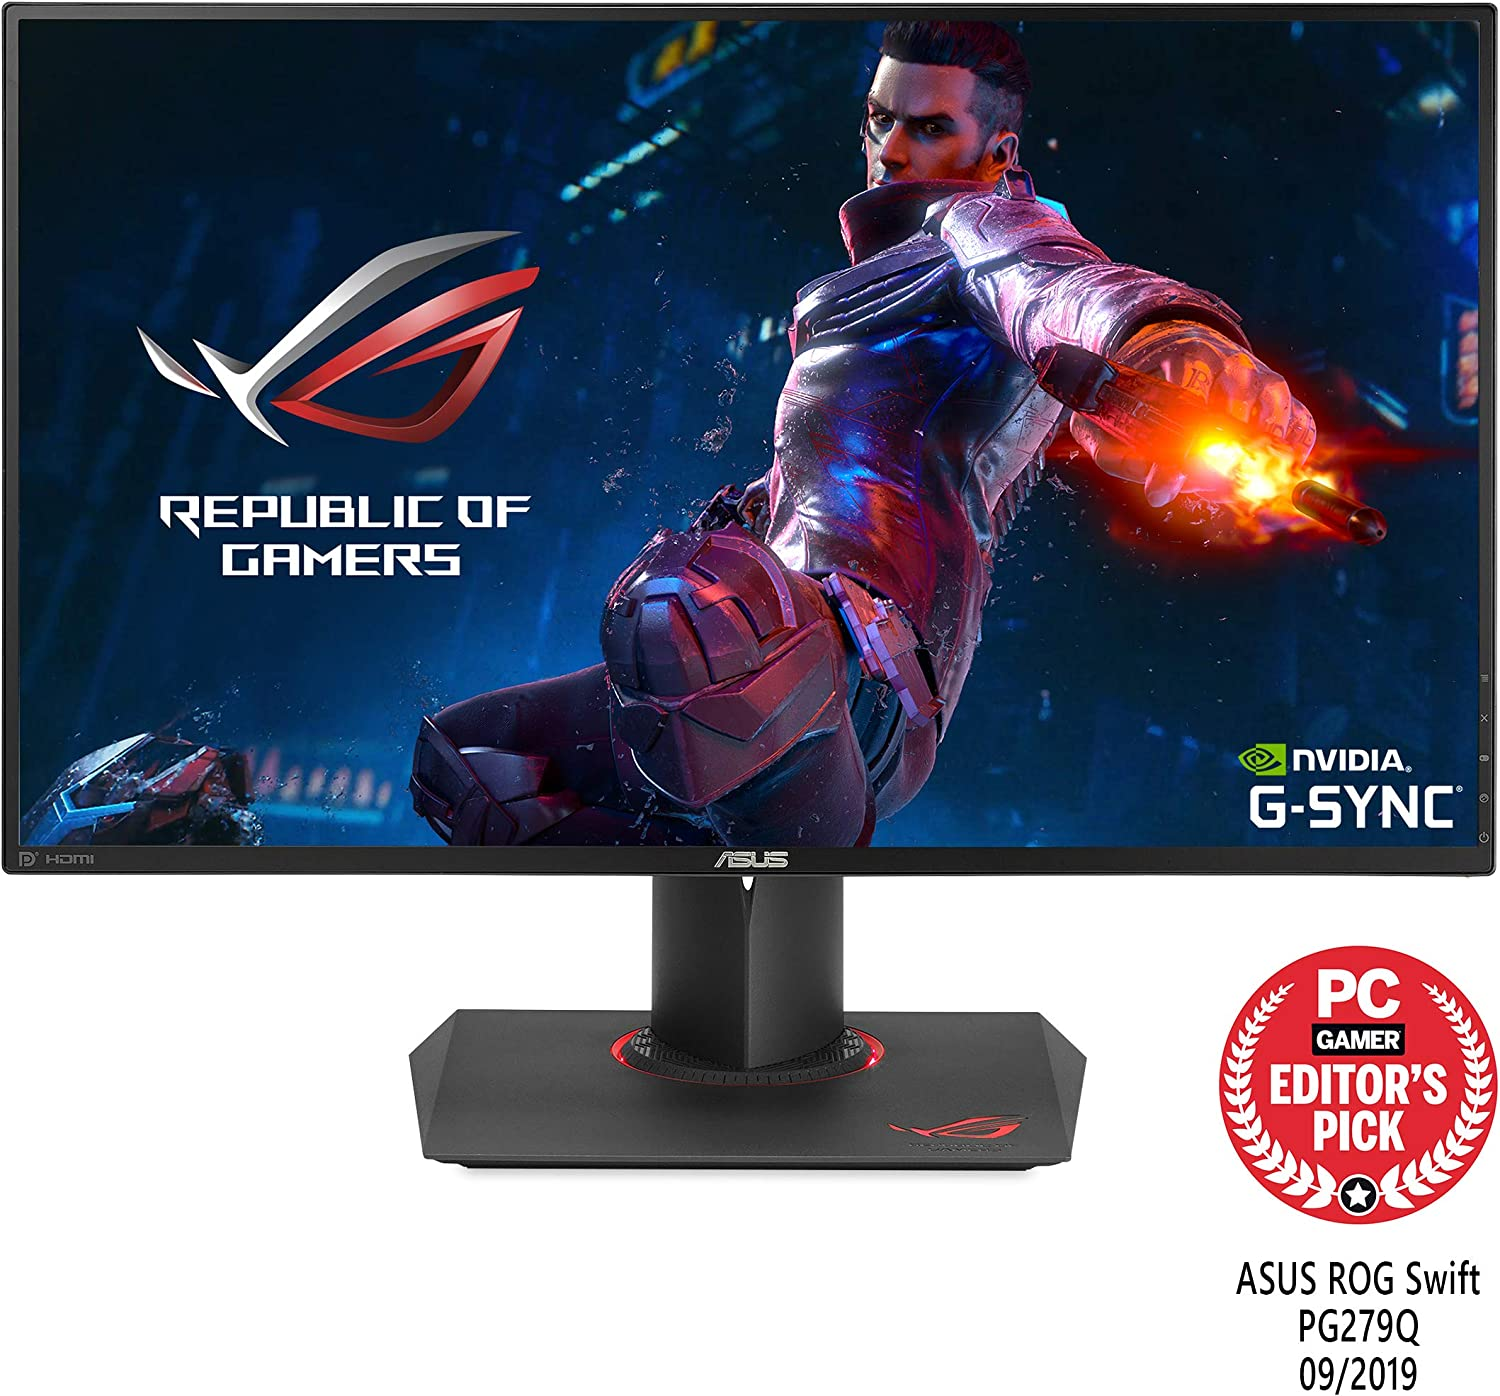 "Asus ROG Swift PG279Q 27"" Gaming Monitor, 1440P WQHD (2560 x 1440), IPS, 165Hz (Supports 144Hz), G-SYNC, Eye Care, DisplayPort Adjustable Ergonomic"